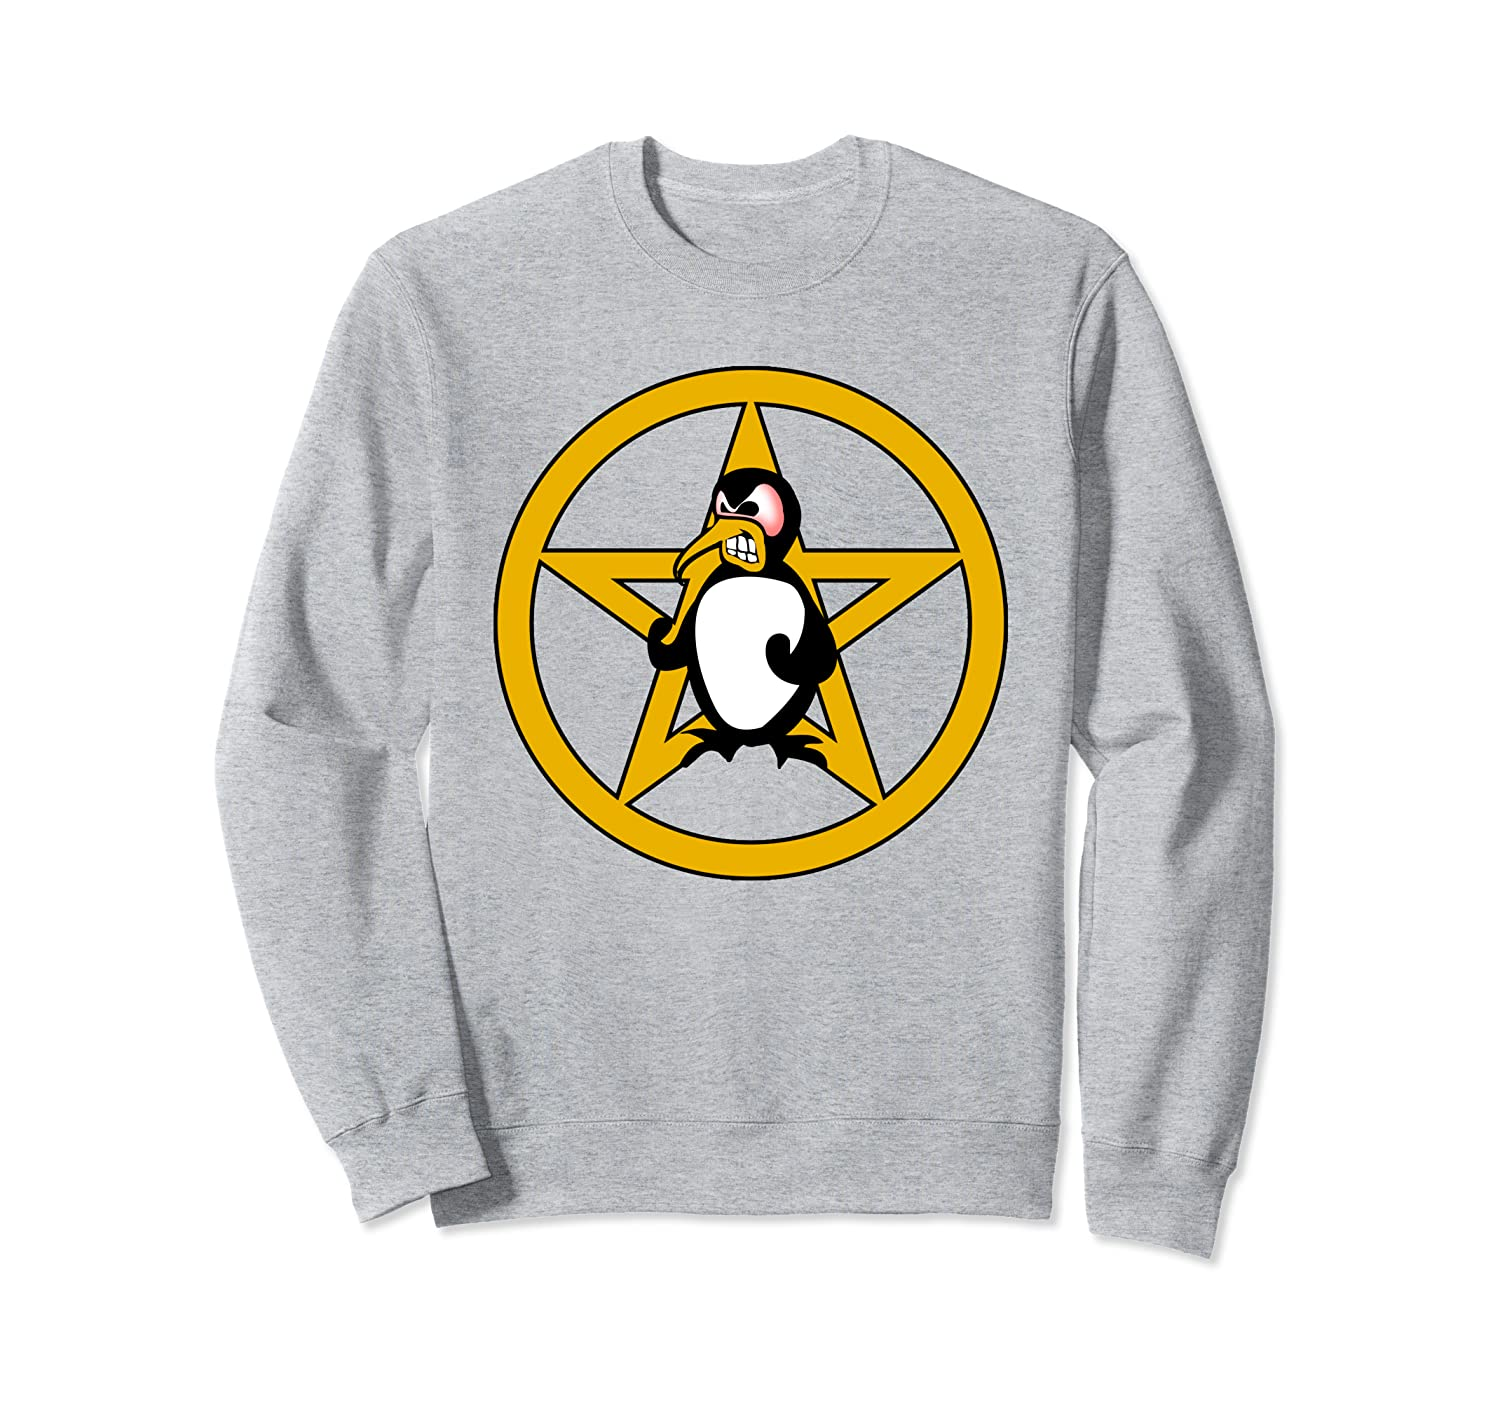 Black Goth Angry Penguin & Pentagram Sweatshirt